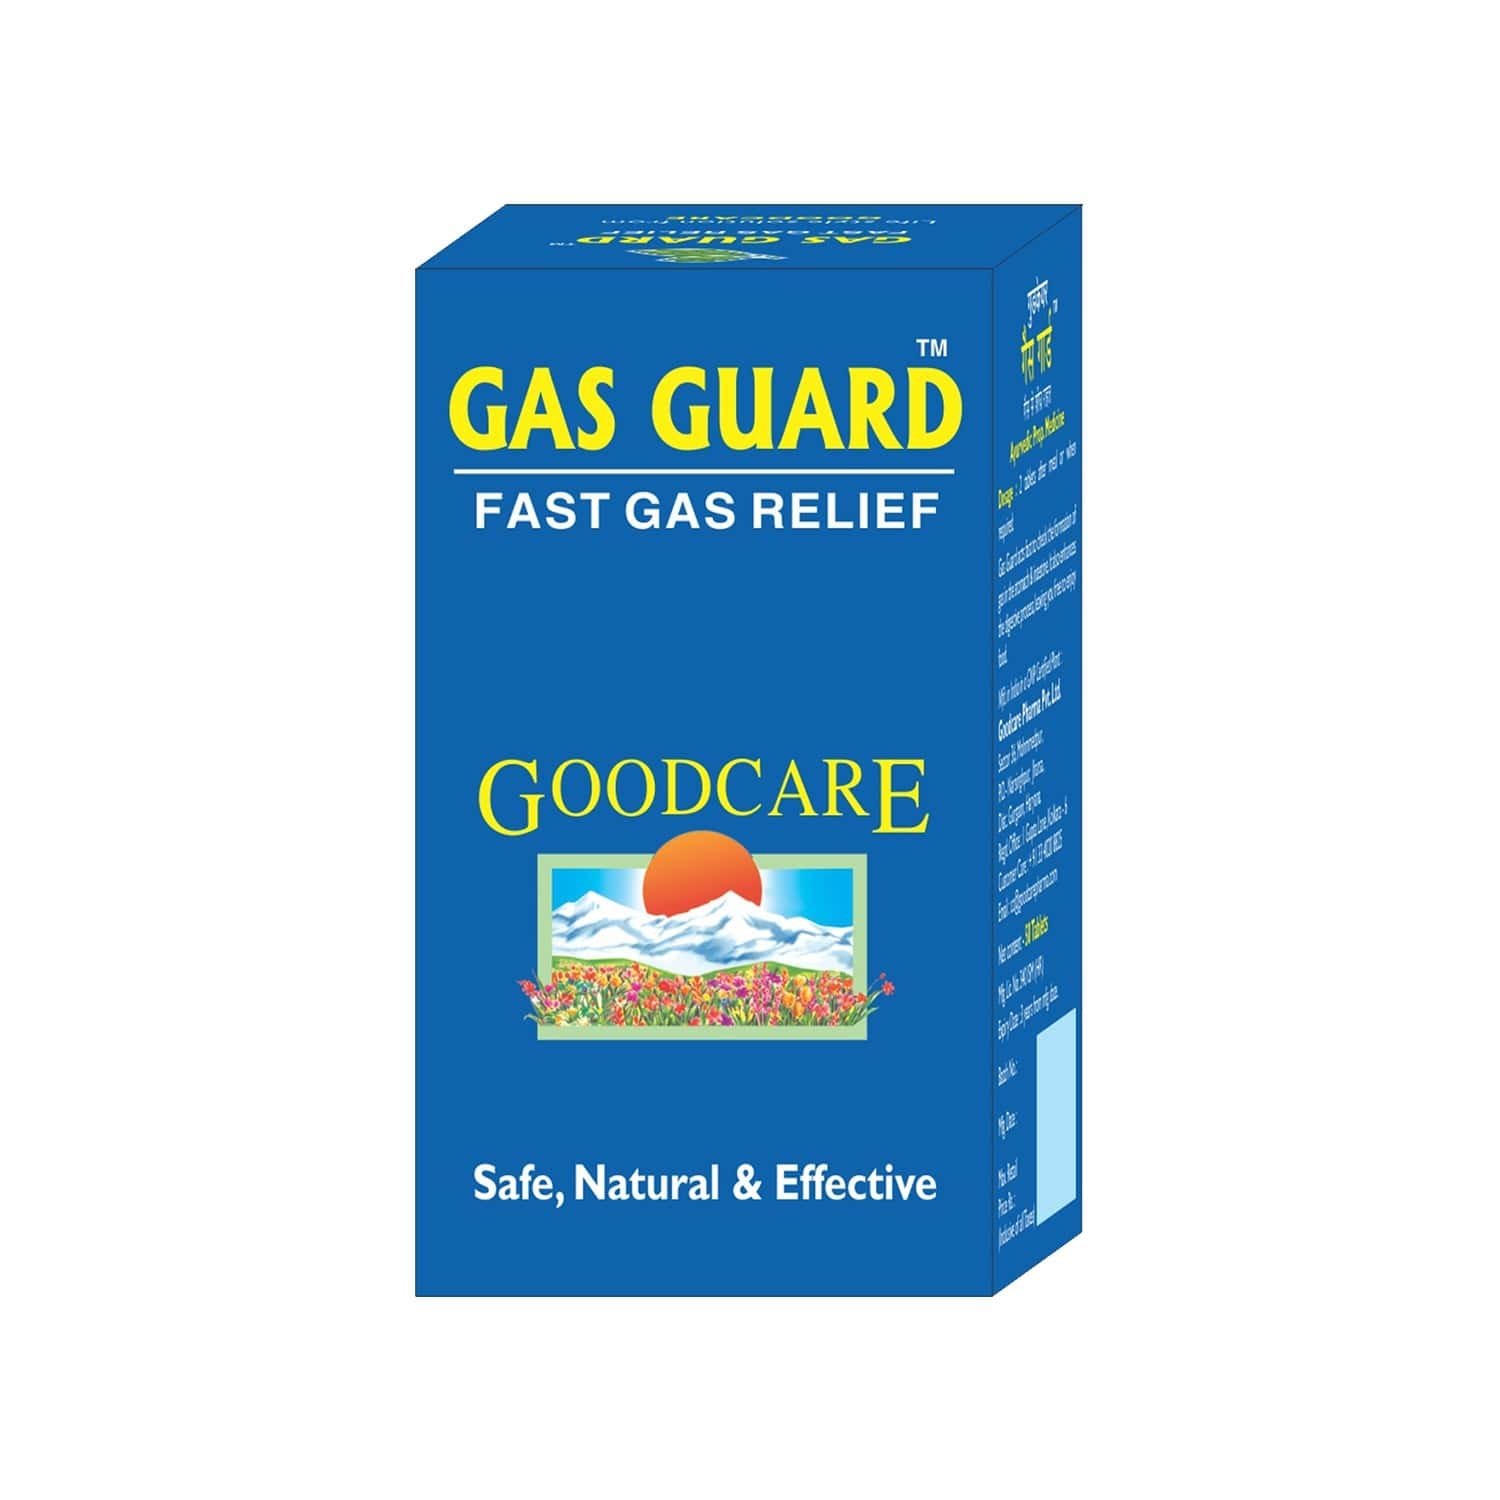 Goodcare Gas Guard - 50no's